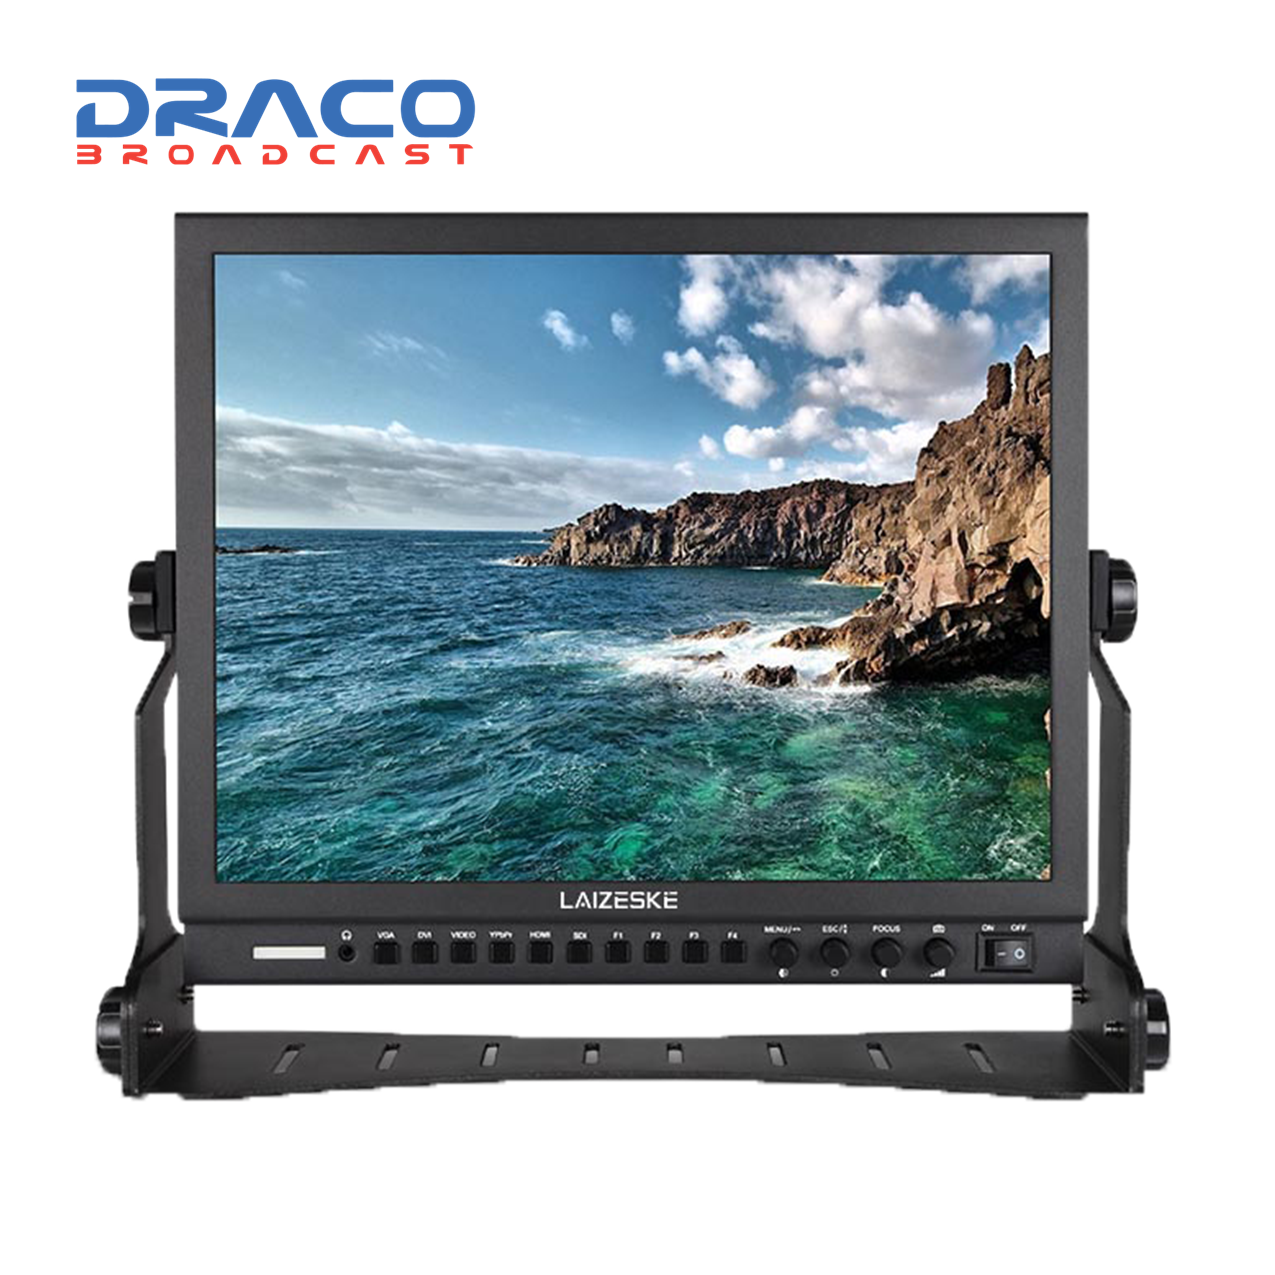 Laizeske DR150S 15″ LCD Production Monitor